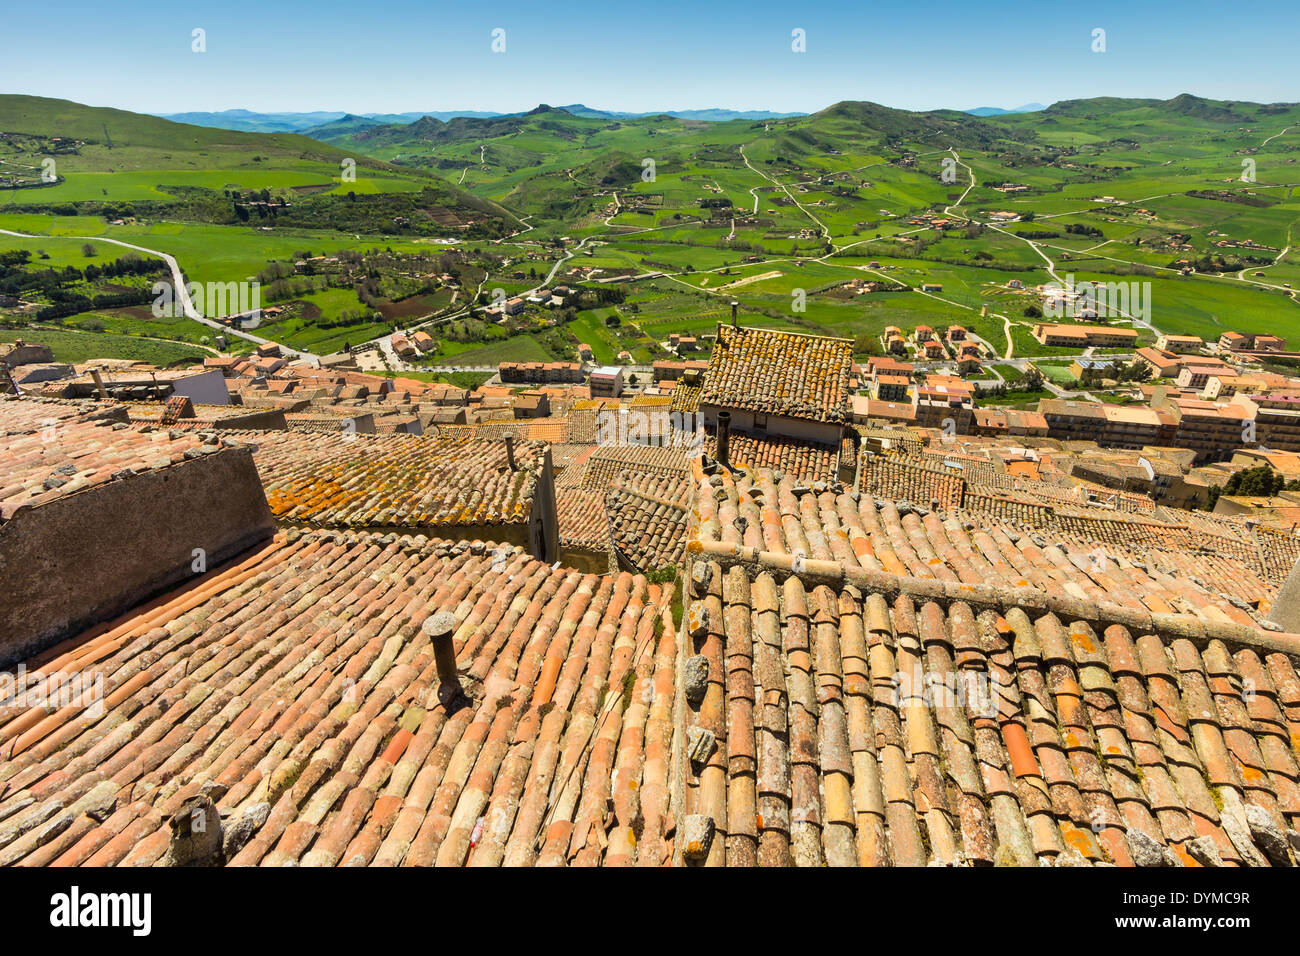 Tiled rooftops at this central hill town in Spring. Gangi was a common Mafia last name; Gangi, Palermo Province, Sicily, Italy - Stock Image